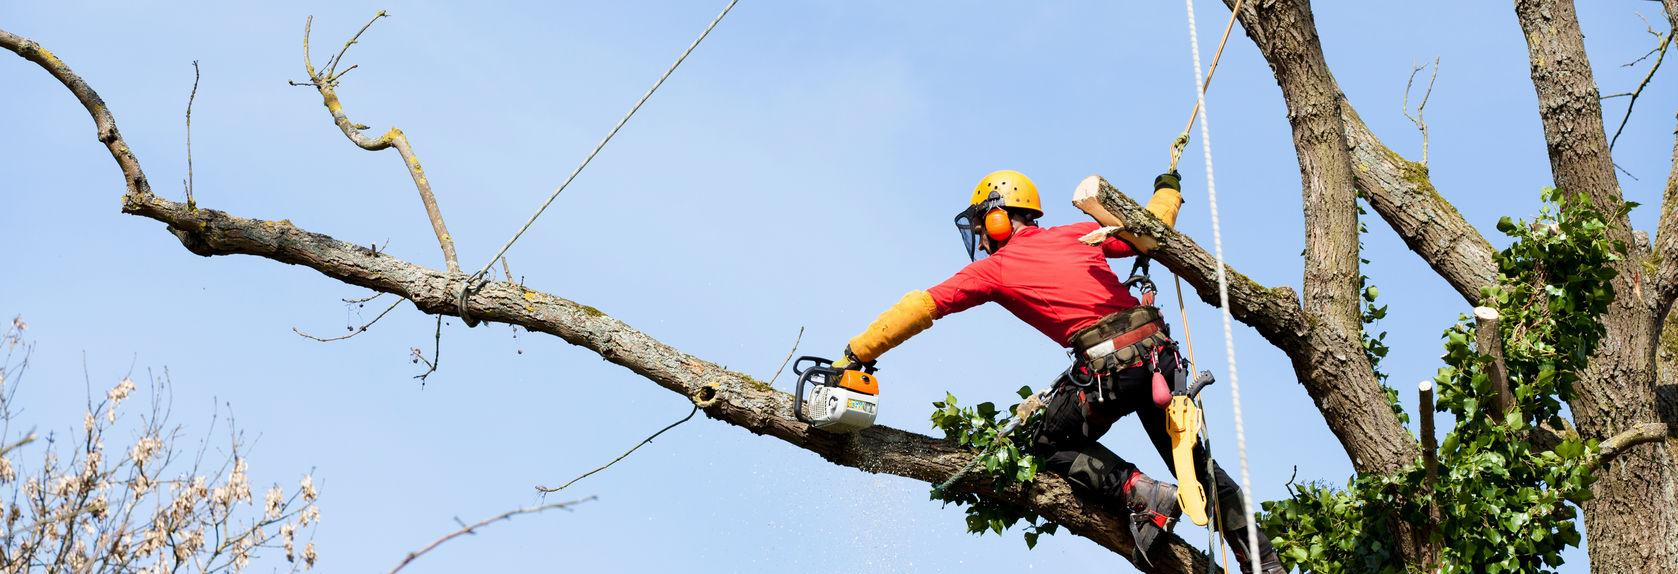 Tree trimmer cutting branch high in tree. Call Meca Tree Services today.